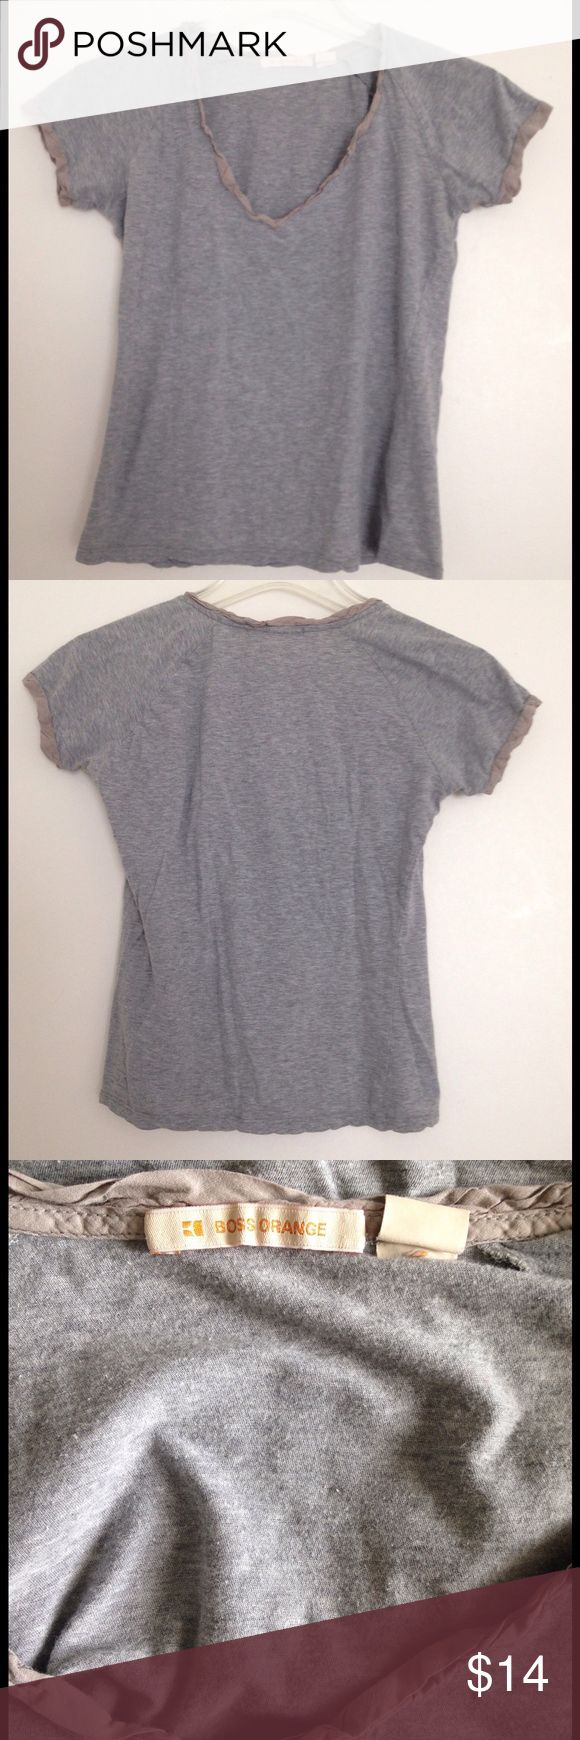 """Boss Orange Grey cotton tee with trim - size XS Cotton grey tee as pictured. V- neck. Neckline and sleeve trim. 21"""" long. BOSS ORANGE Tops"""